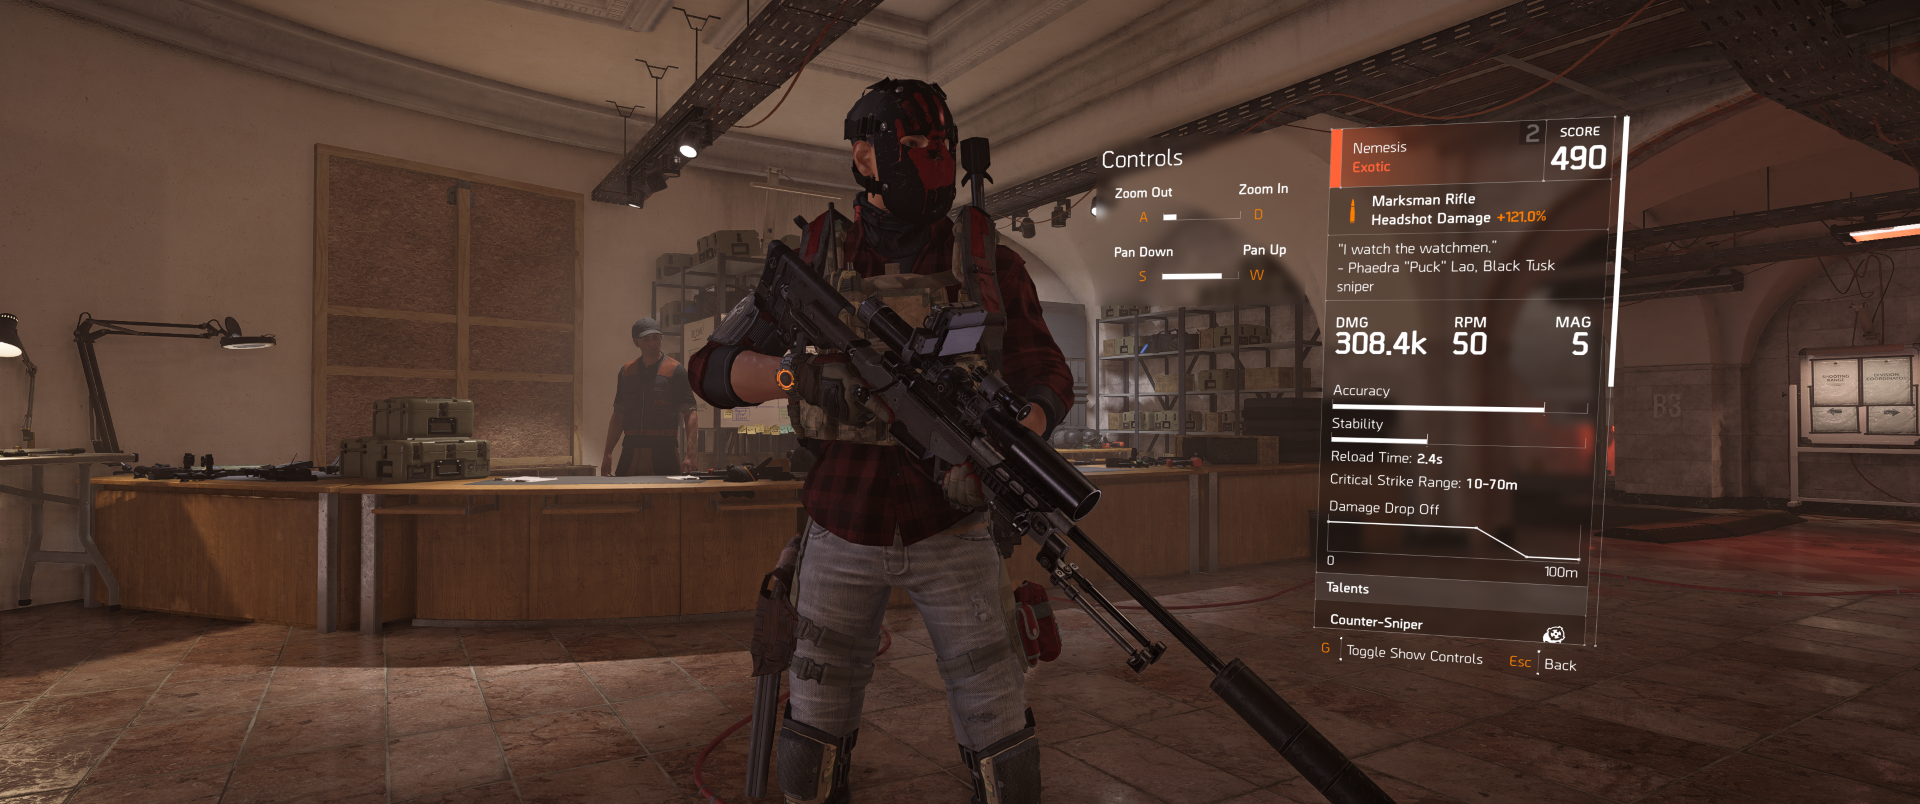 Tom Clancy's The Division 2 Screenshot 2019.04.18 - 21.45.39.48 (Large).png